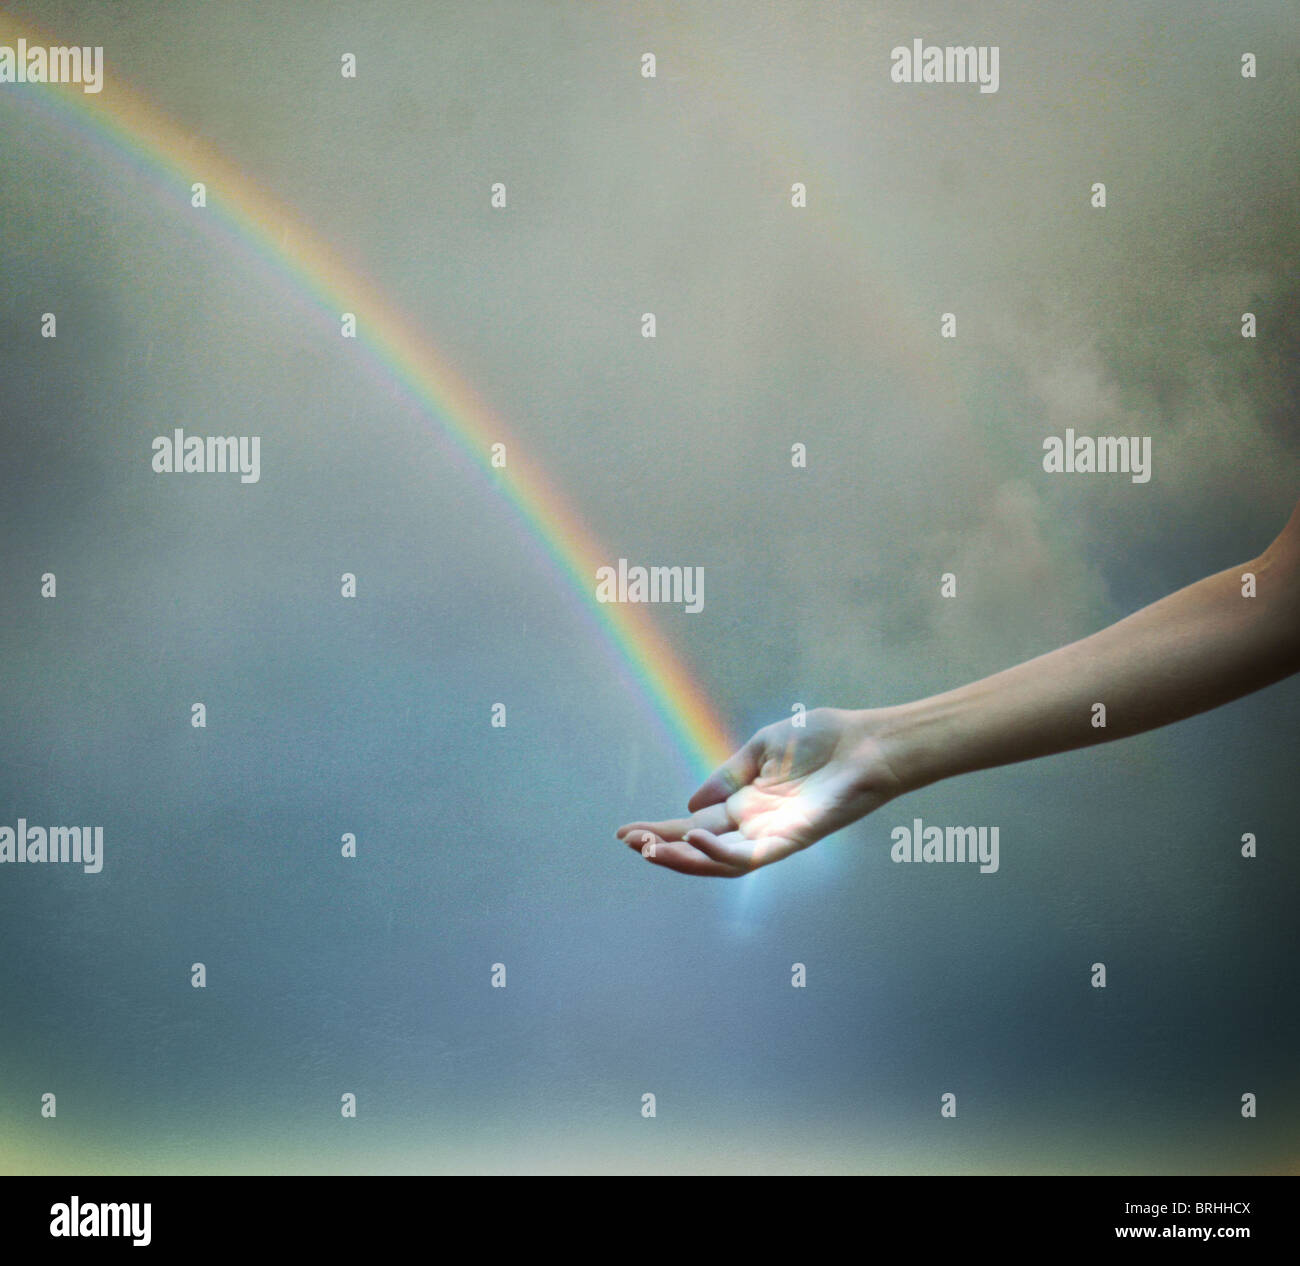 rainbow touching a hand - Stock Image